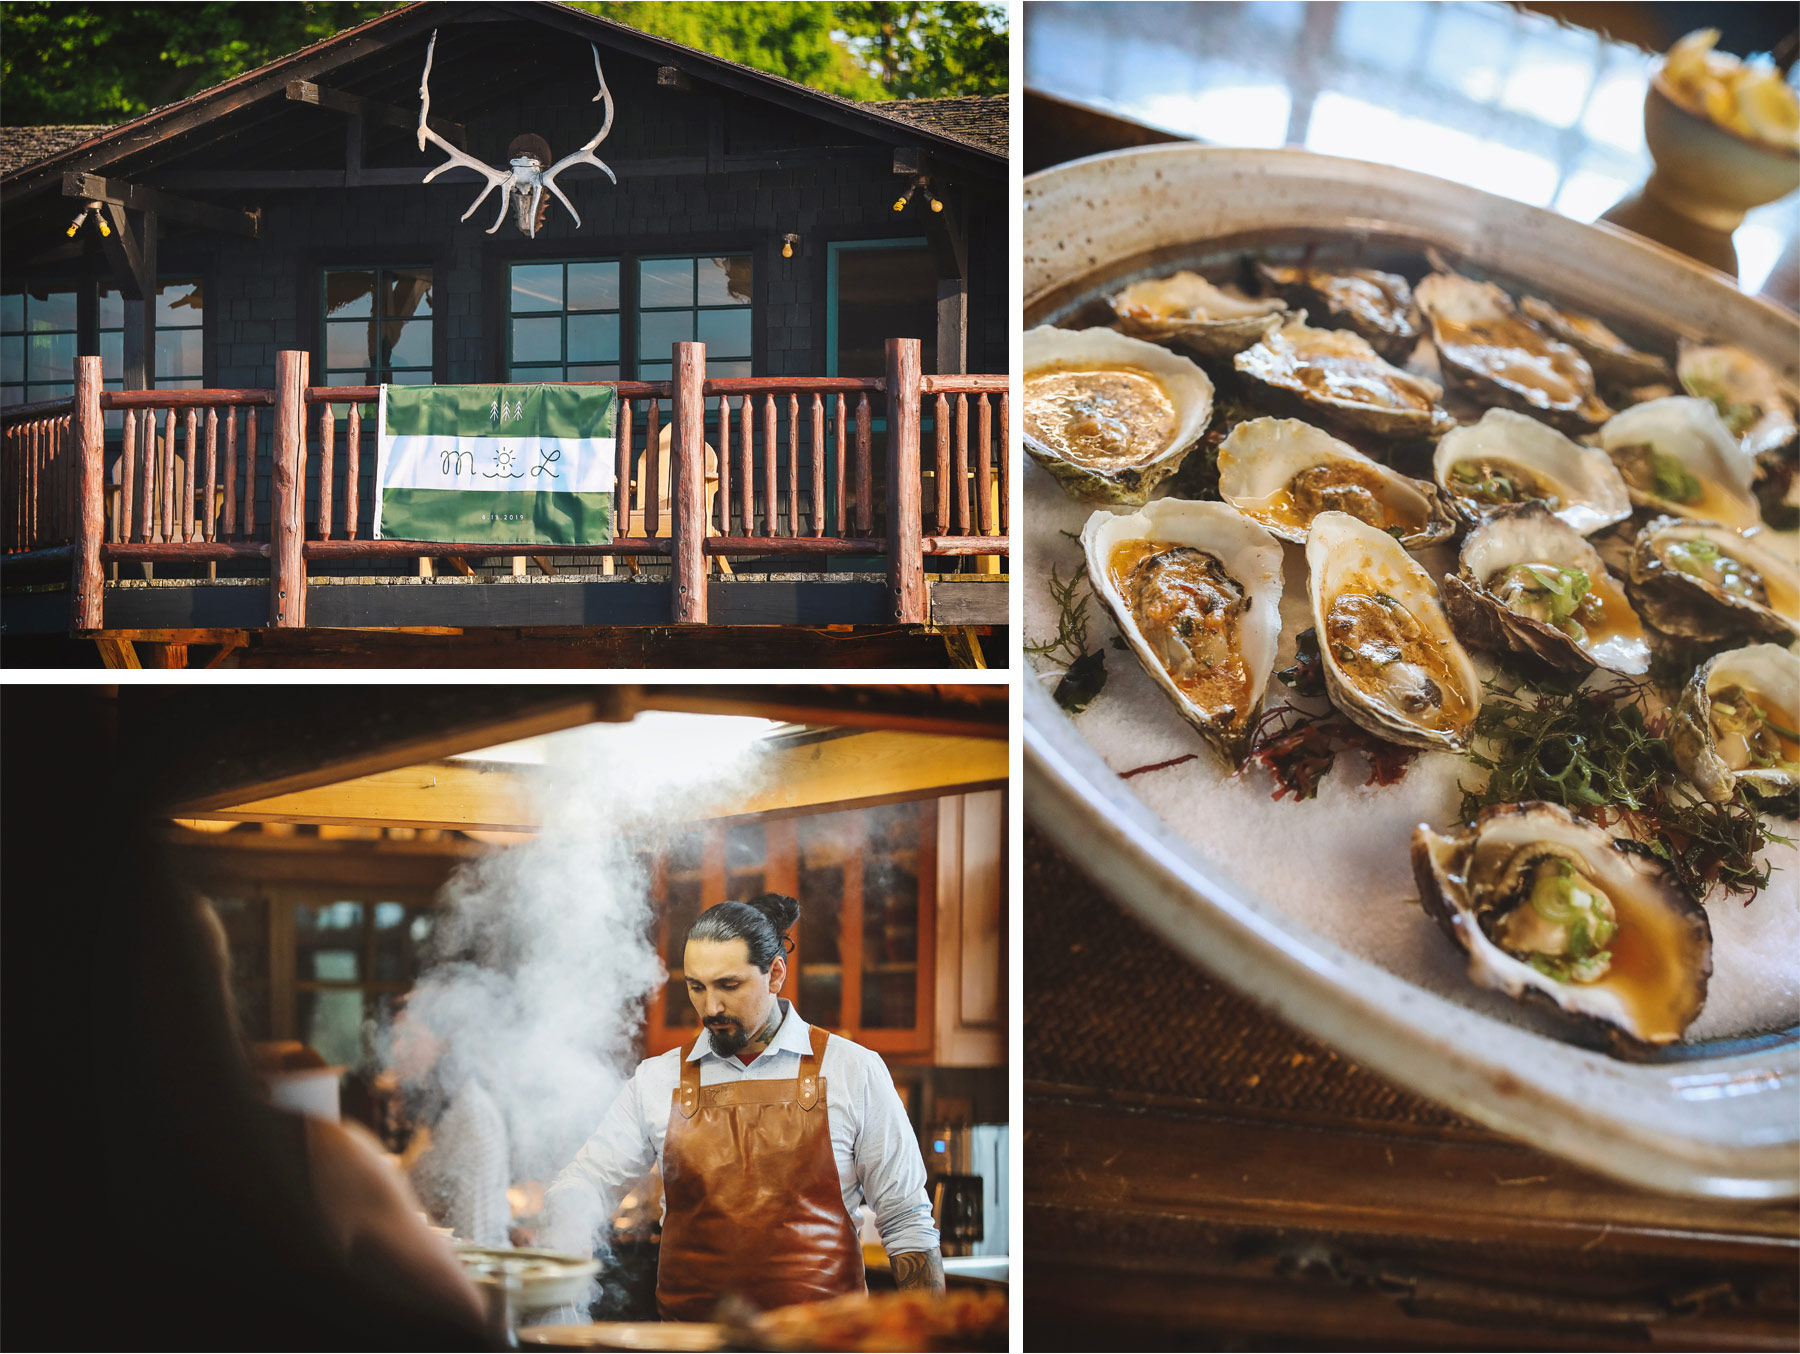 02-Vick-Photography-Wedding-Stouts-Island-Lodge-Wisconsin-Flag-Log-Cabin-Oysters-Chef-MiJa-and-Lucius.jpg